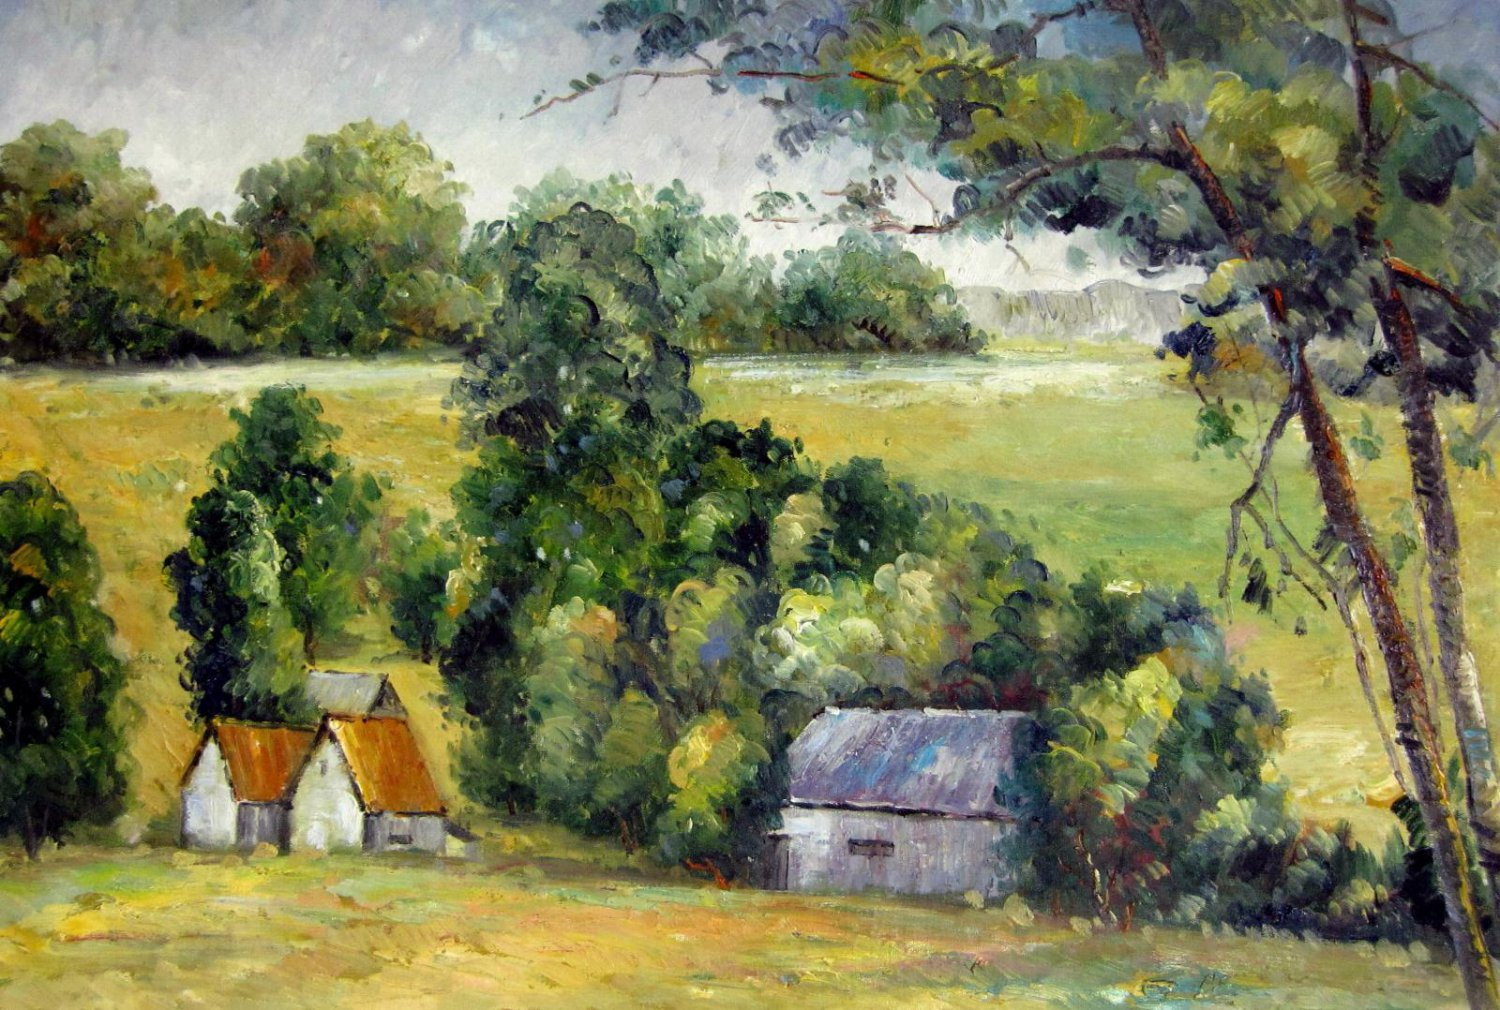 Rep. Paul Cezanne 24x36 in. stretched Oil Painting Canvas Art Wall Decor modern008